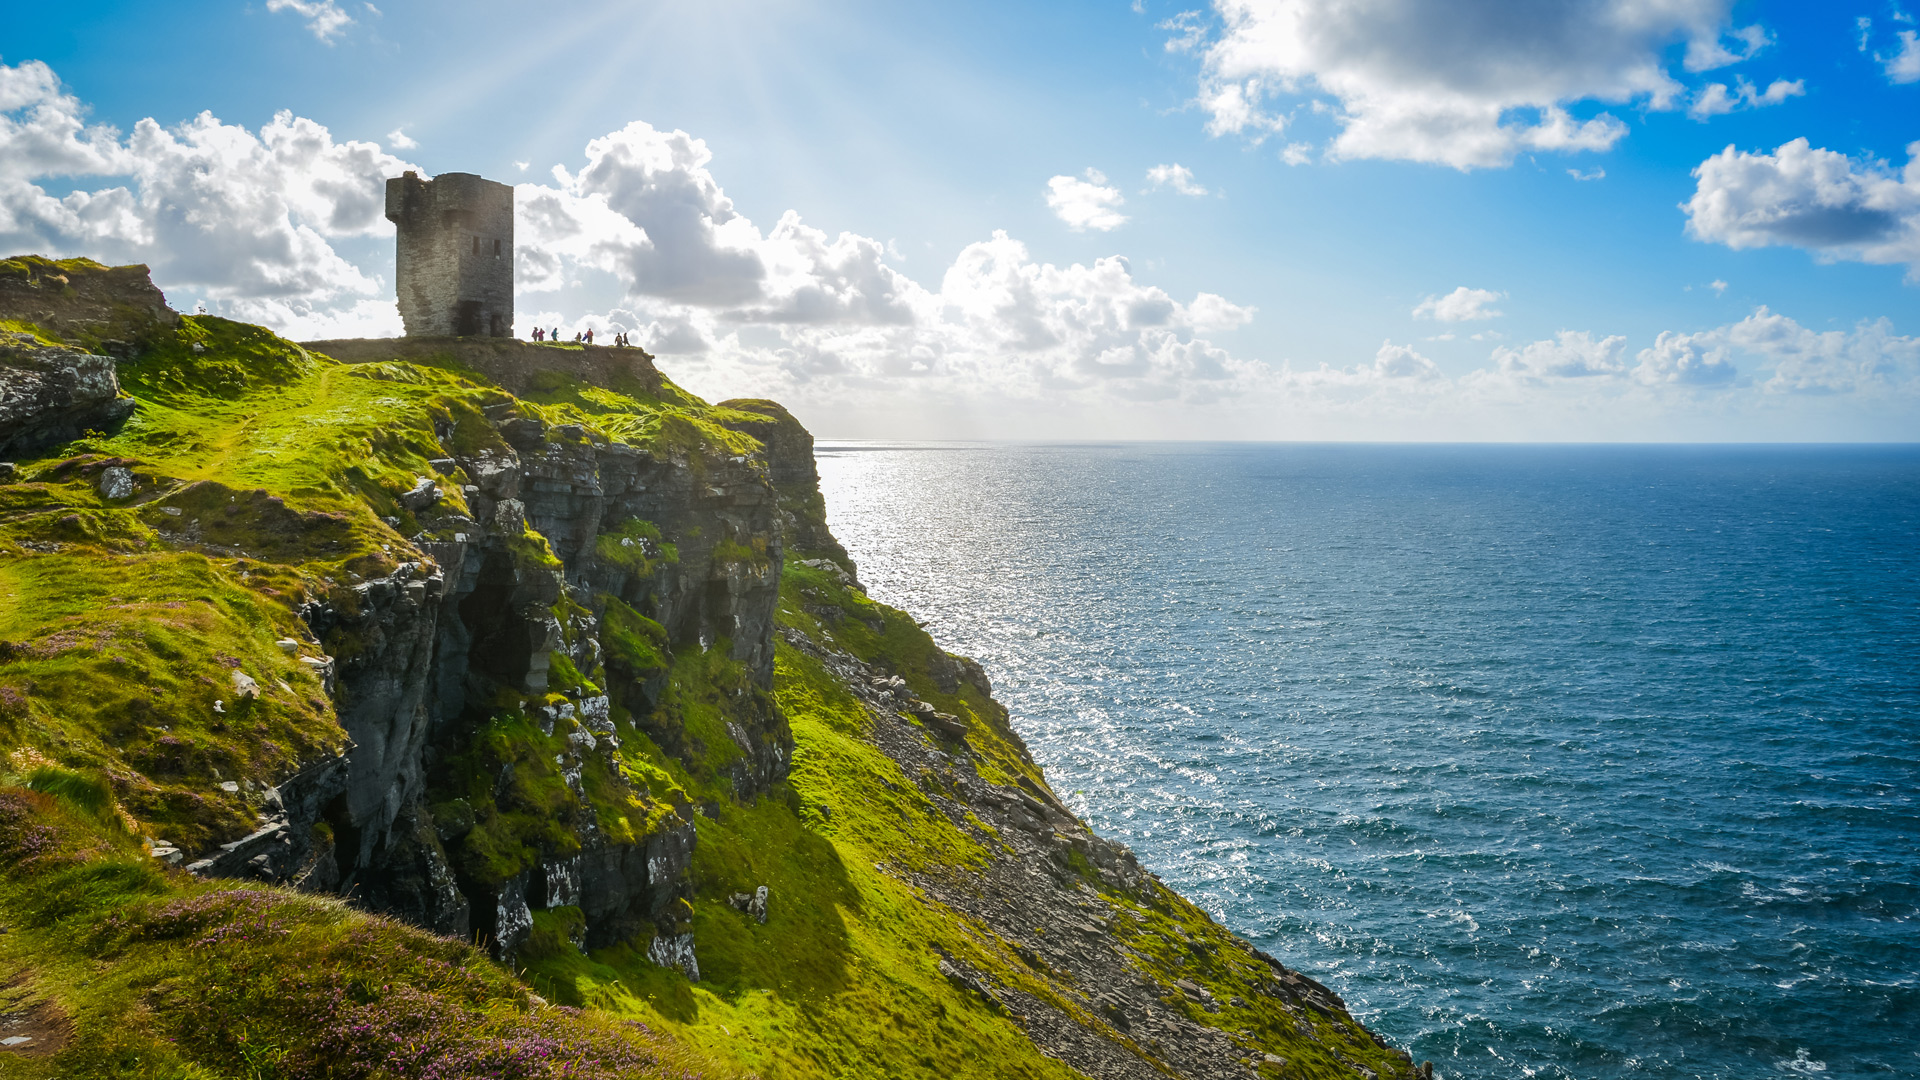 cliffs and ruins in County Clare